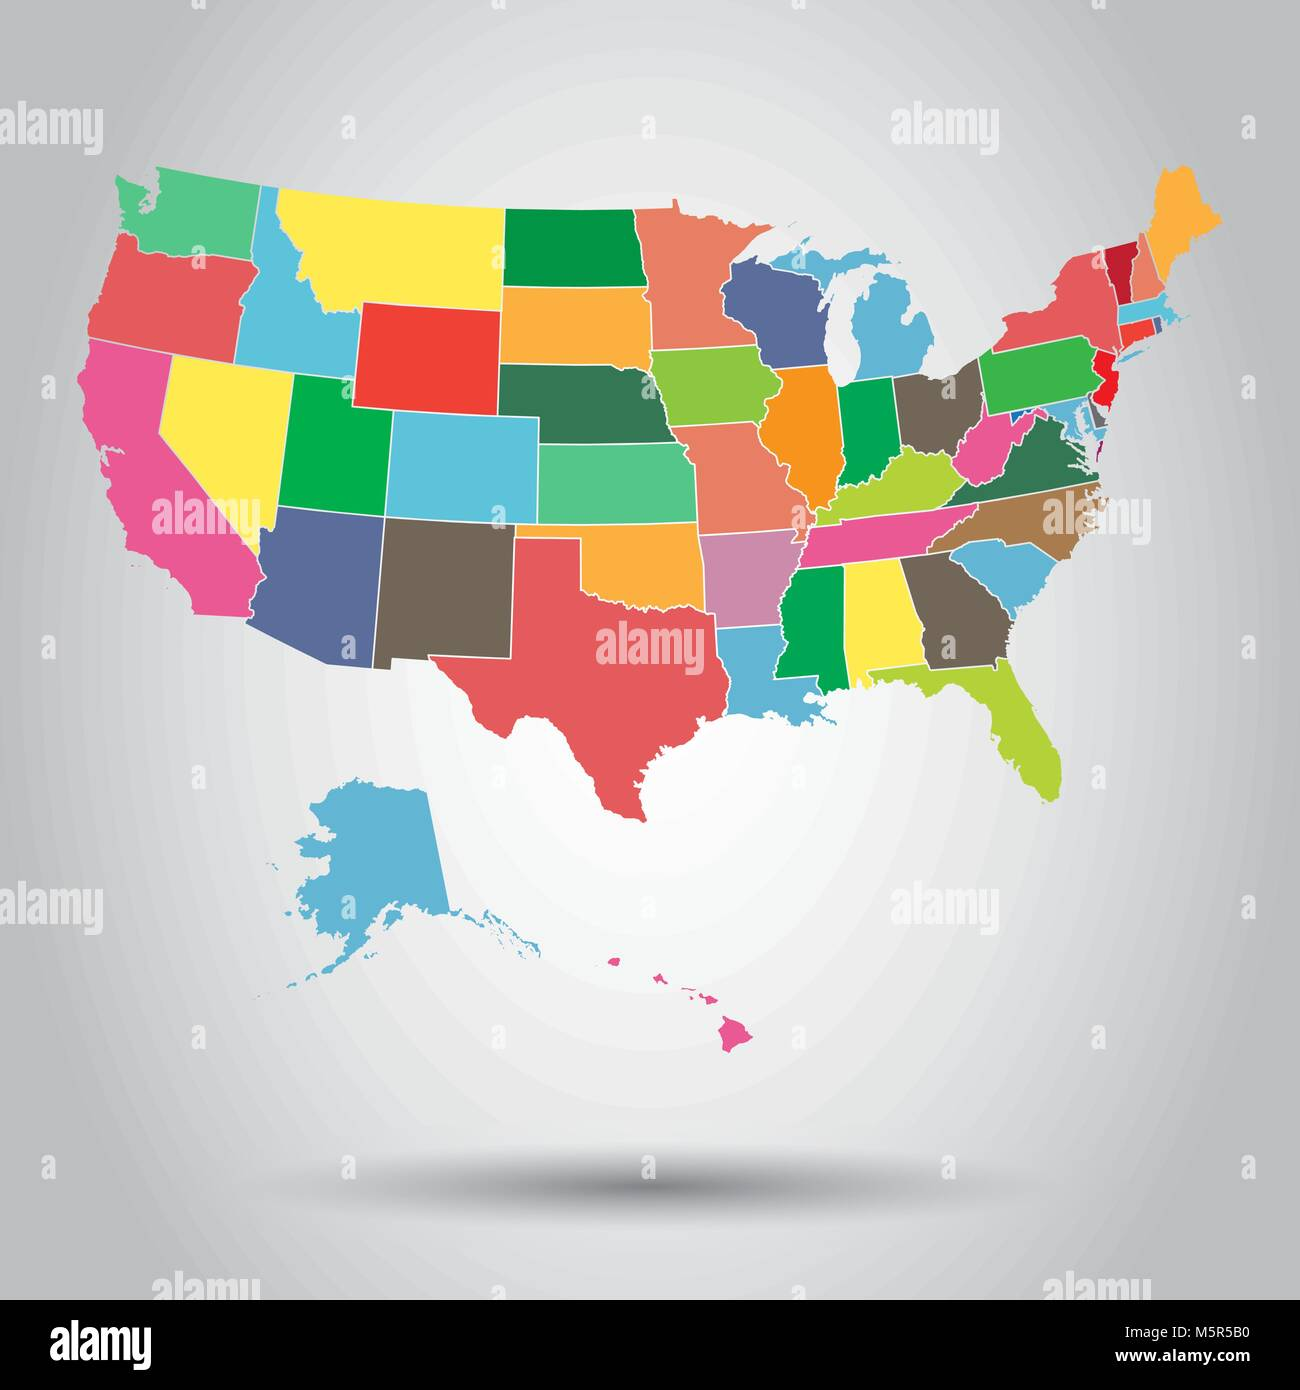 USA map icon. Business cartography concept United States of ...